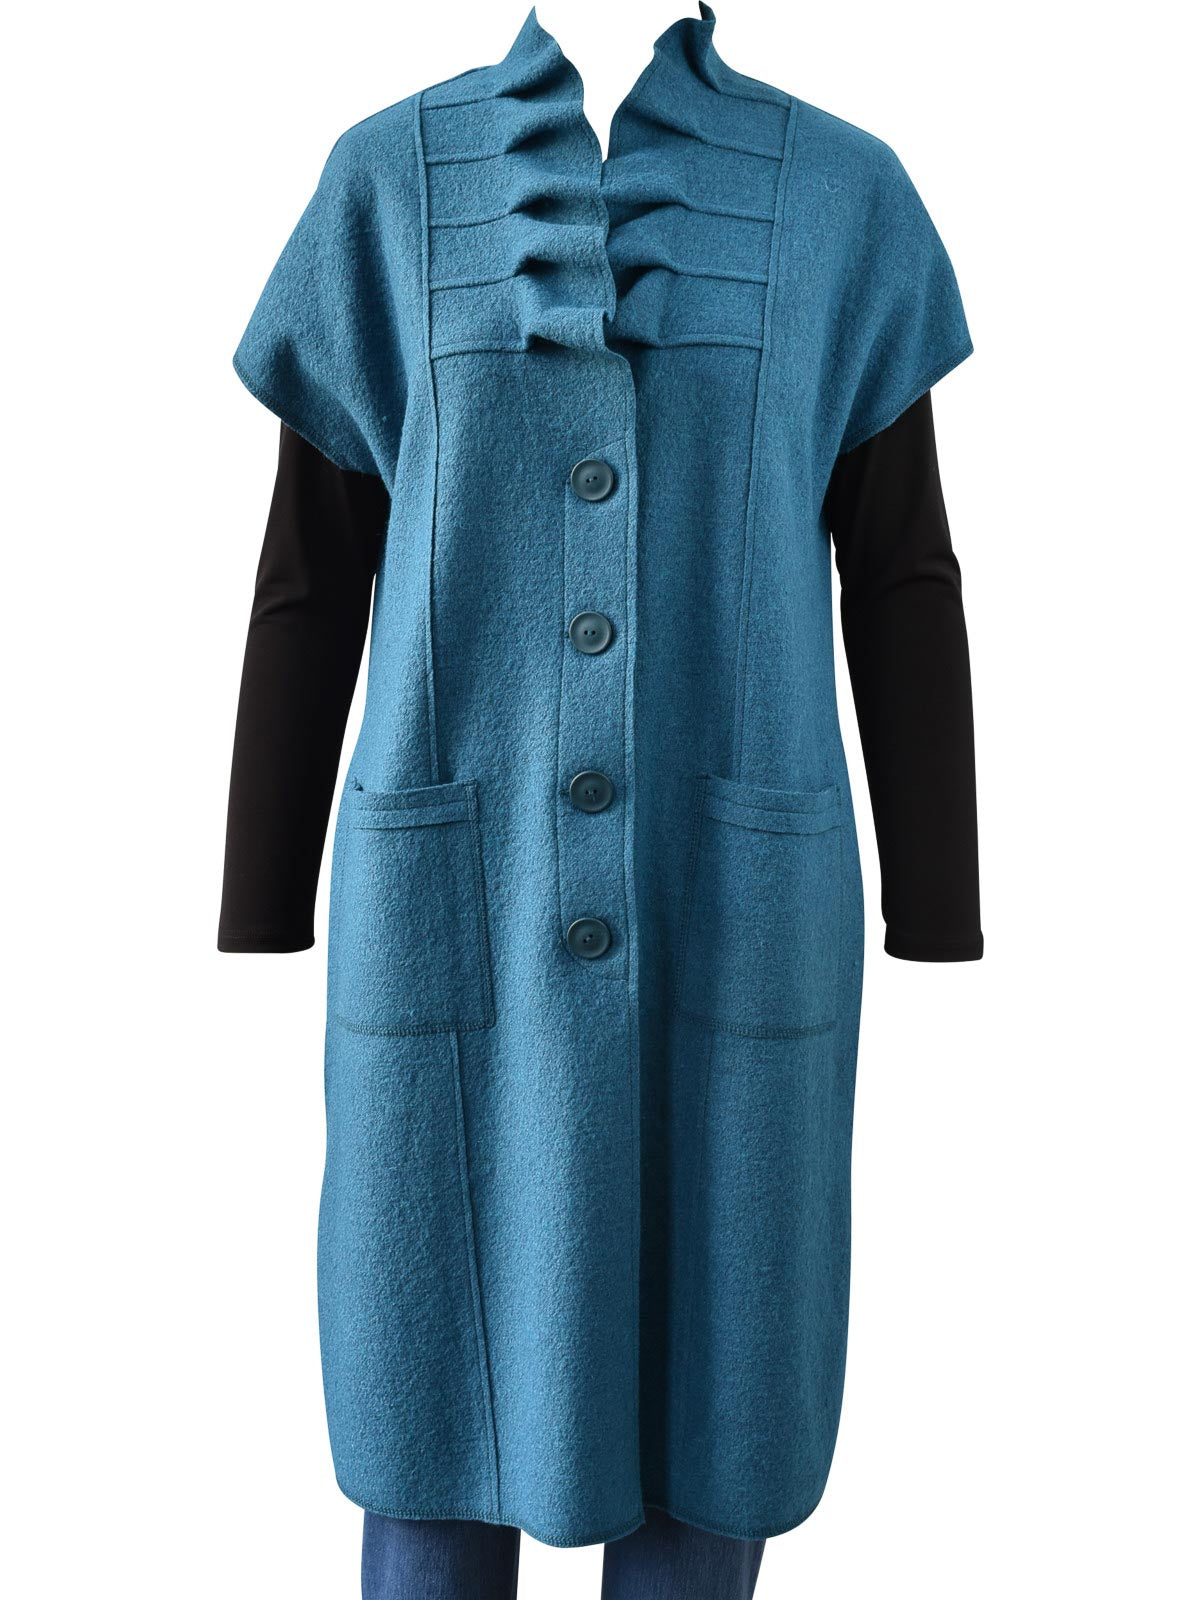 Q'Neel Pleated Collar Duster Vest, Teal